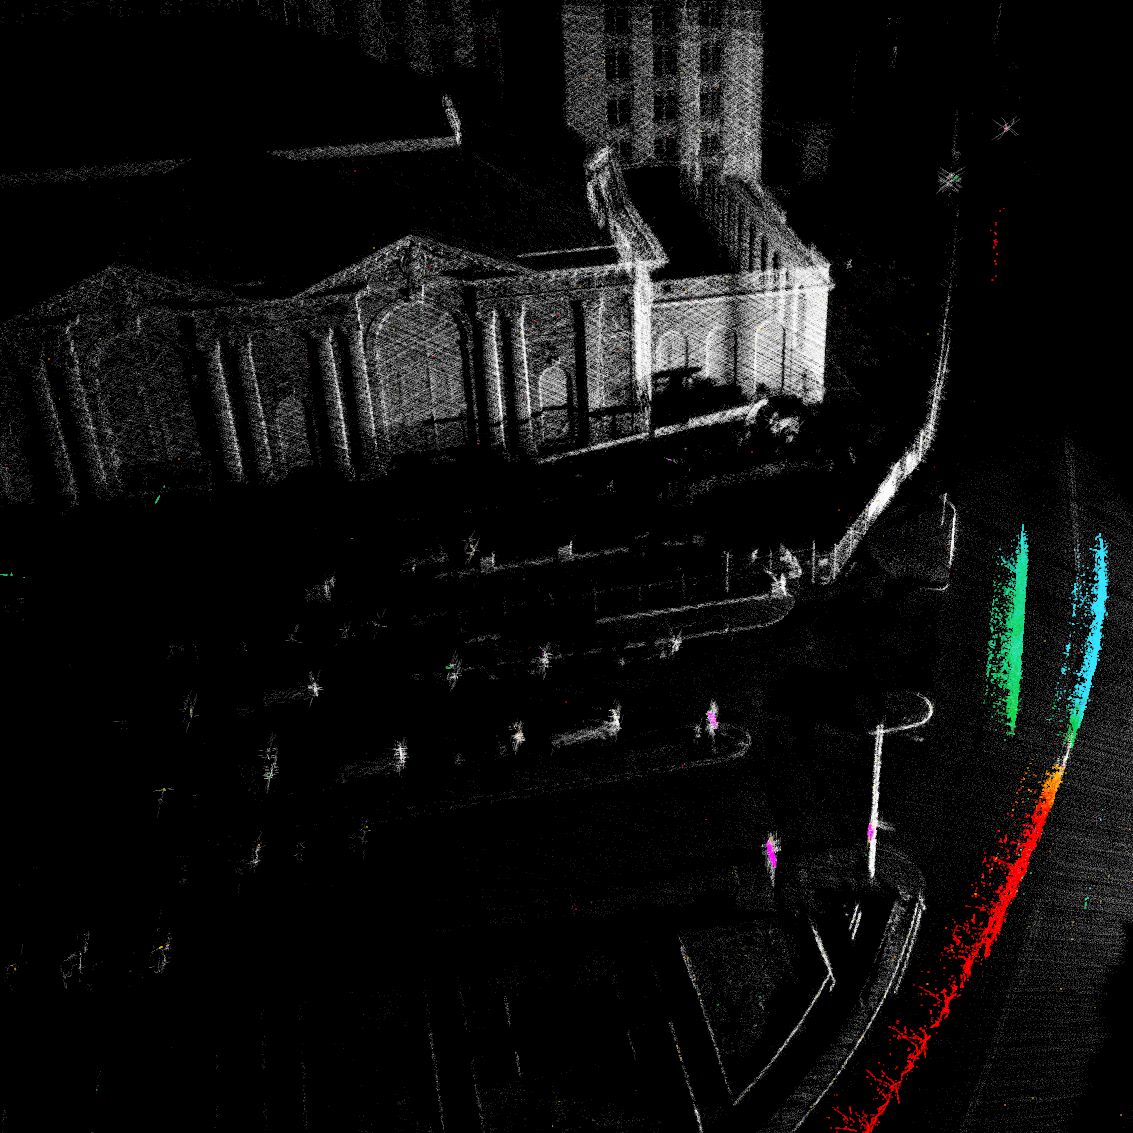 An image of how Detroit's Michigan Central Station looks using lidar.